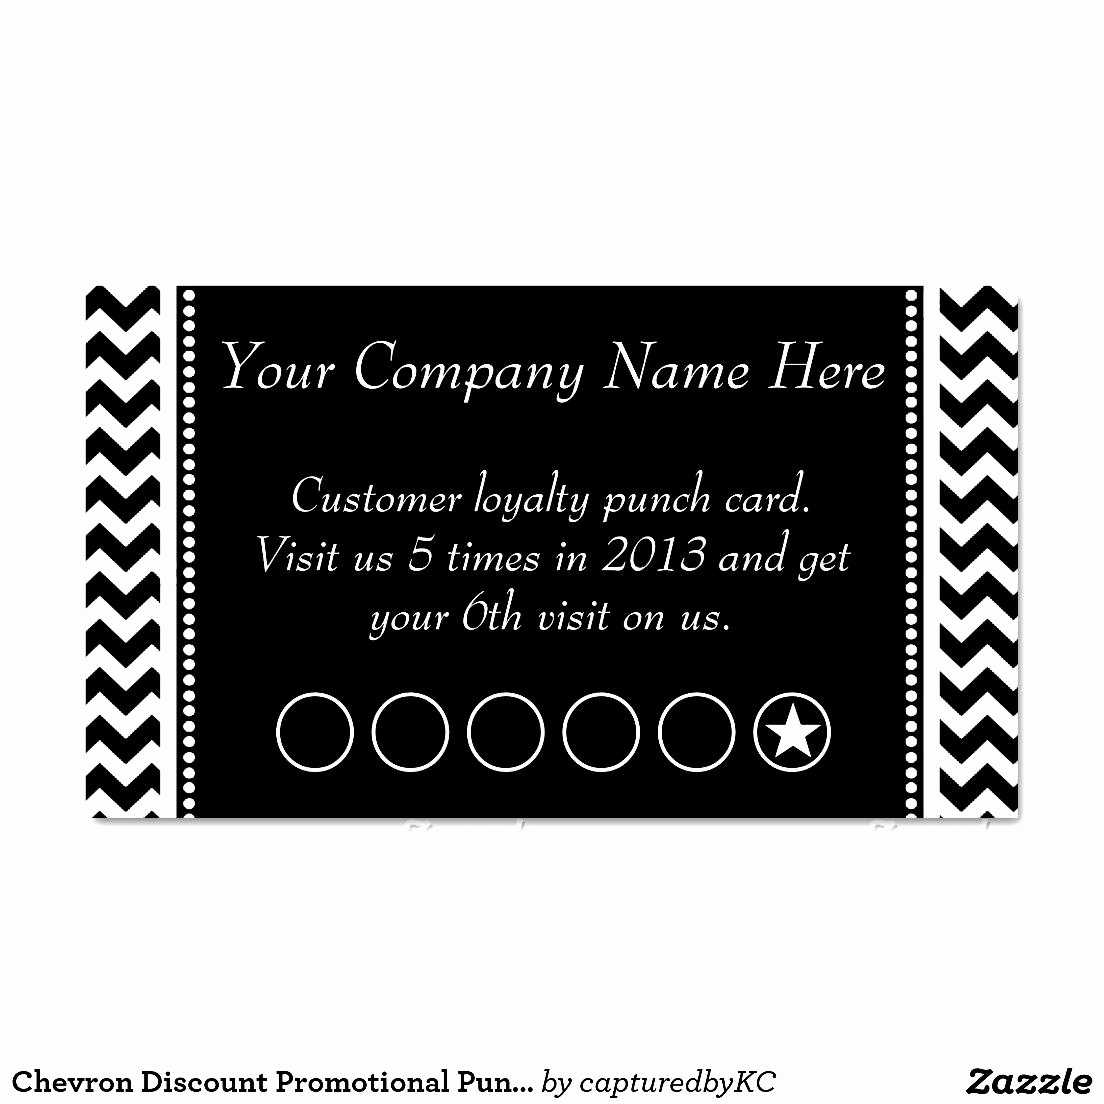 004 Free Printable Chore Punch Card Template Business And In Business Punch Card Template Free